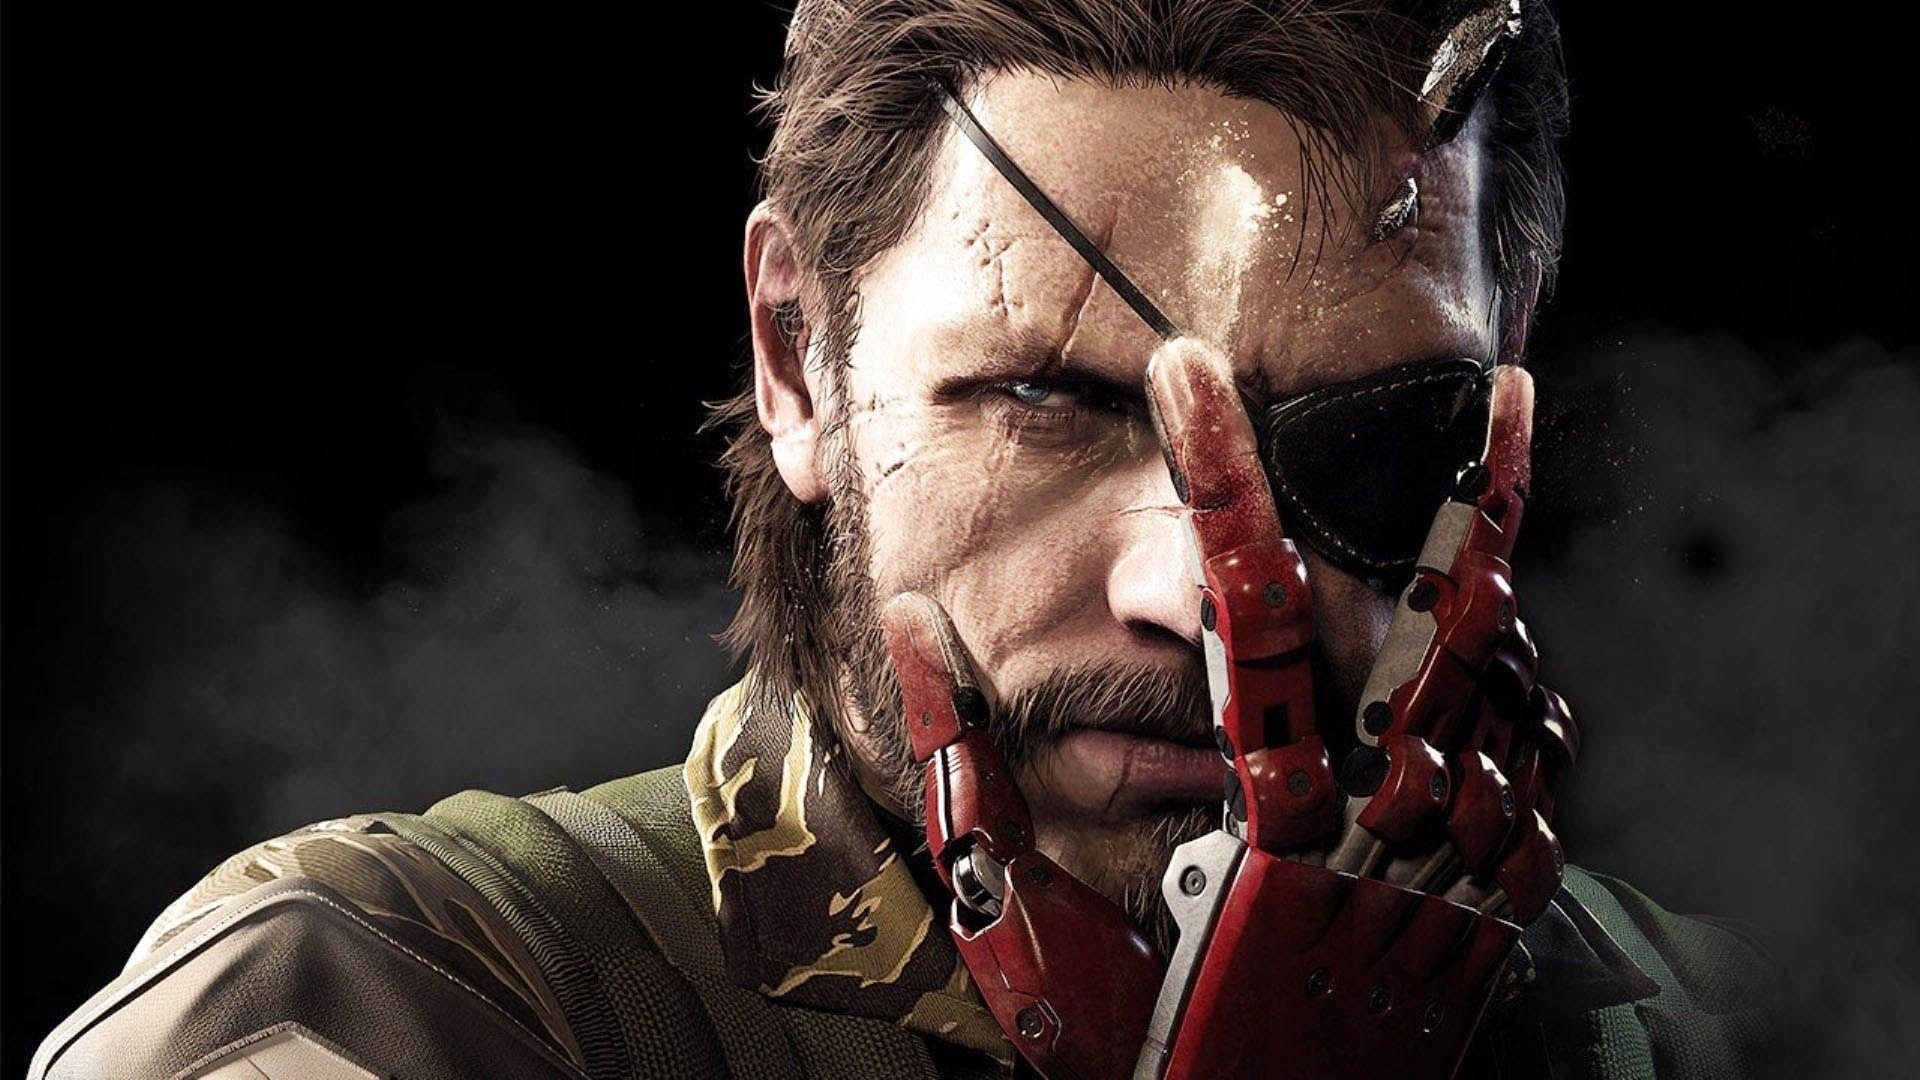 Big Boss's Bionic Arm - Metal Gear Solid V: The Phantom Pain ...